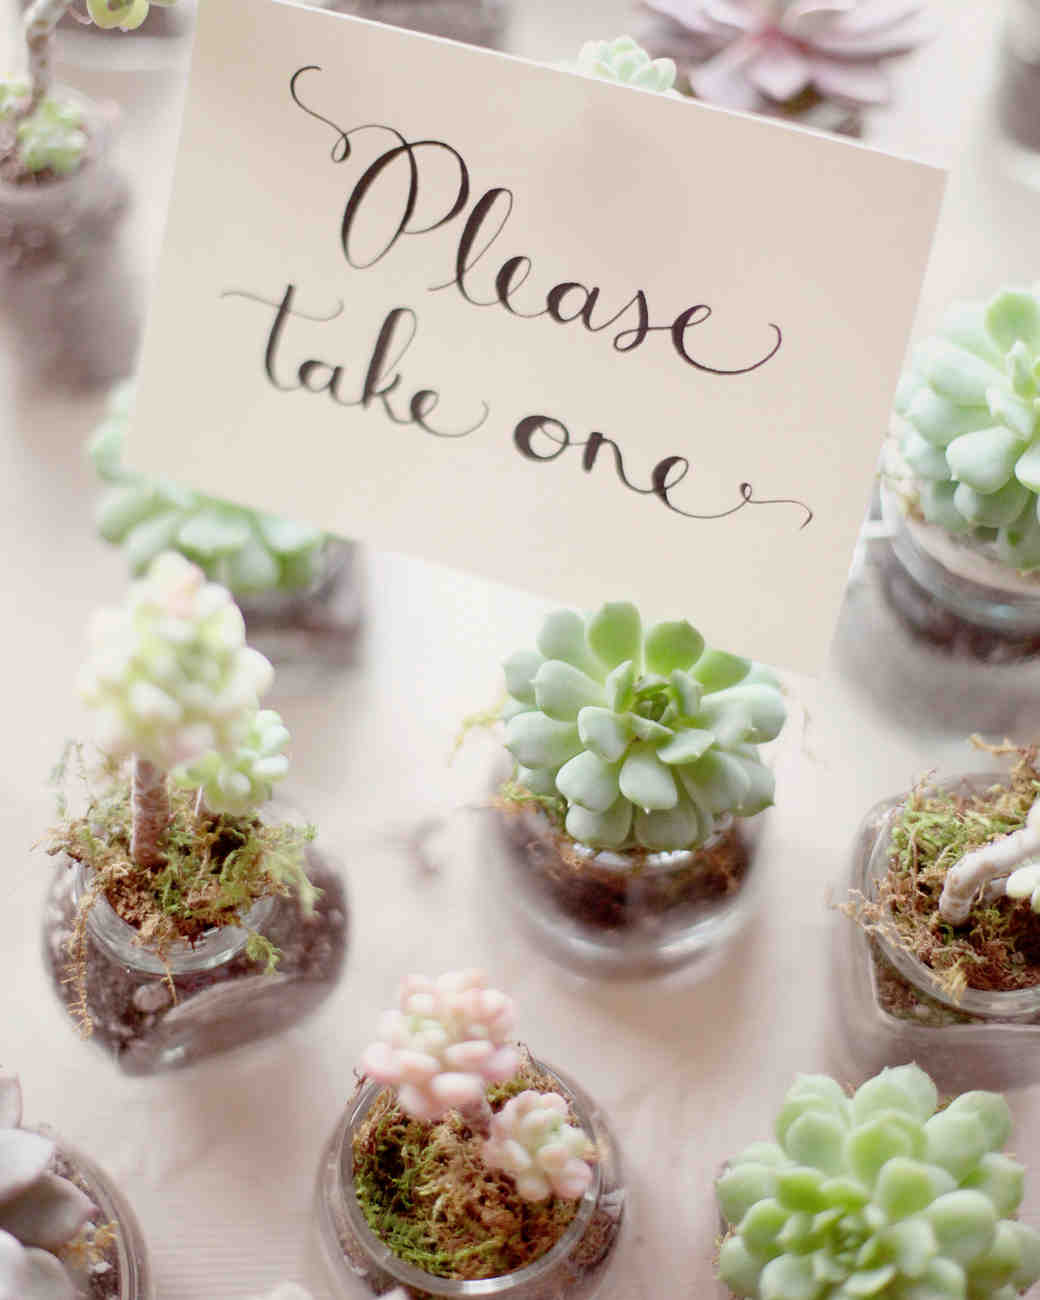 Wedding Favors: Unique Wedding Favors We Loved From Summer Celebrations